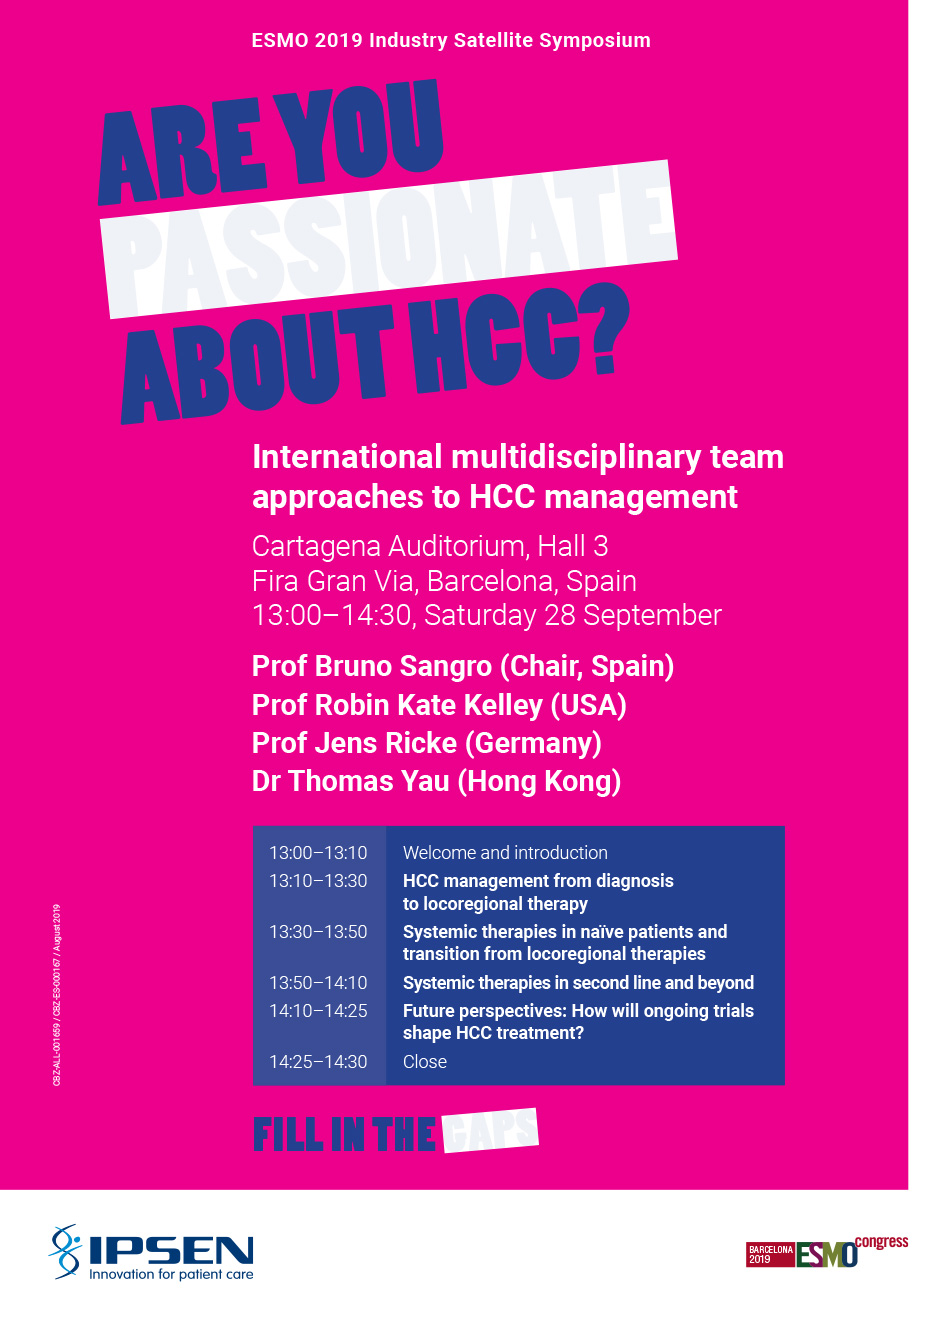 18-Are-You-Passionate-about-HCC-International-Multidisciplinary-Team-Approaches-to-HCC-Management-IPSEN